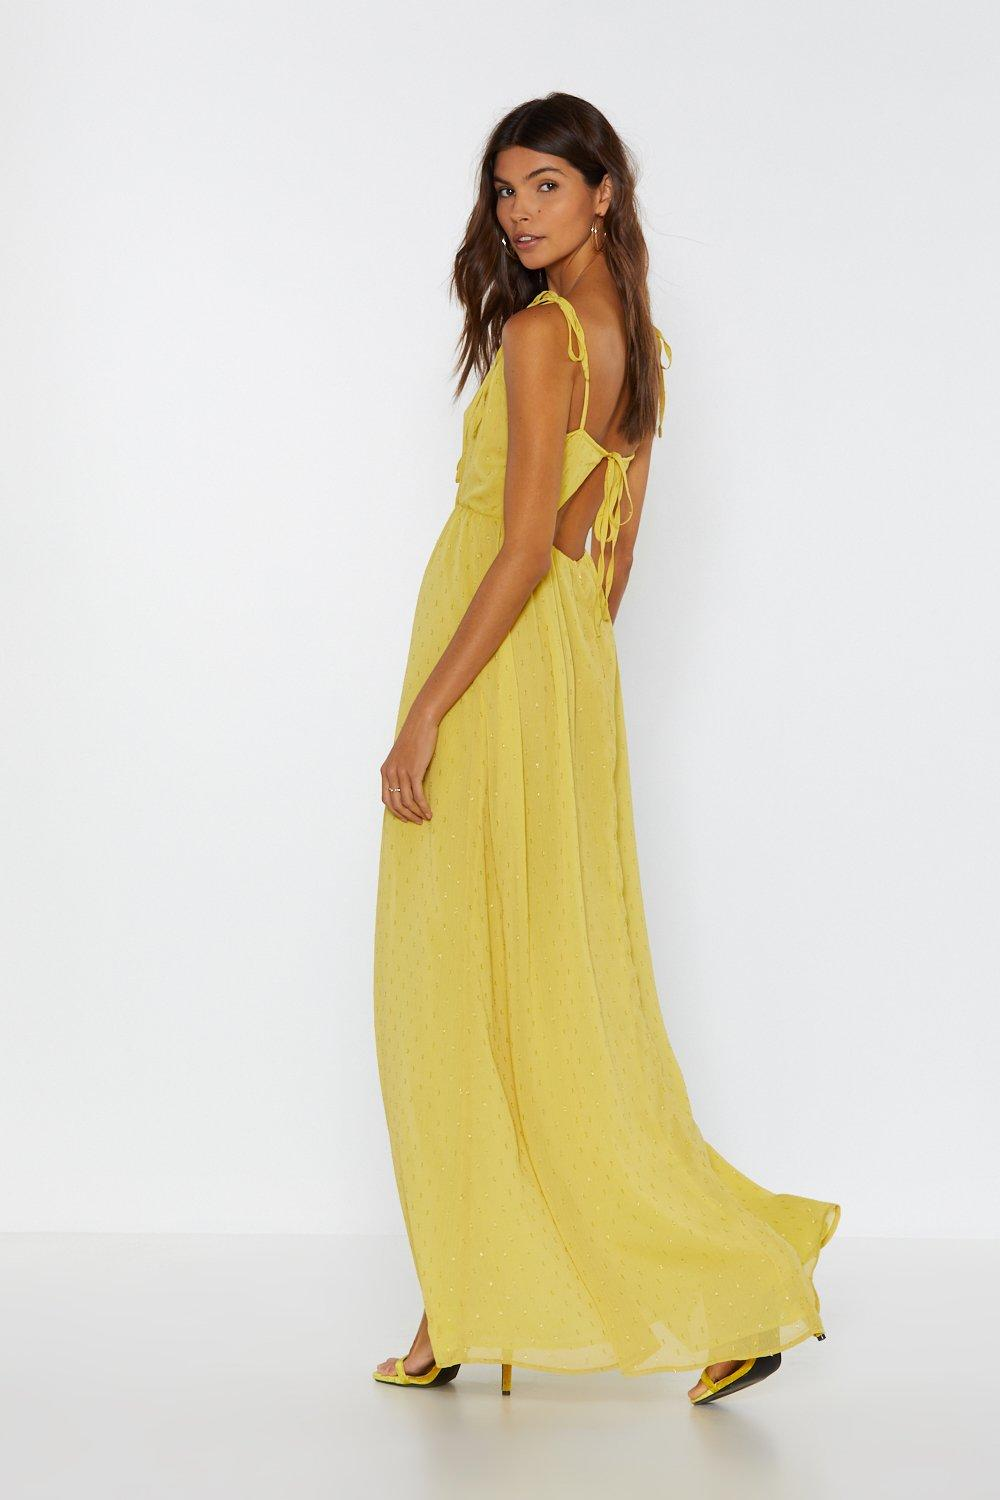 2c1aa52a32d Hover to zoom · Womens Gold Tie Flies Slit Maxi Dress